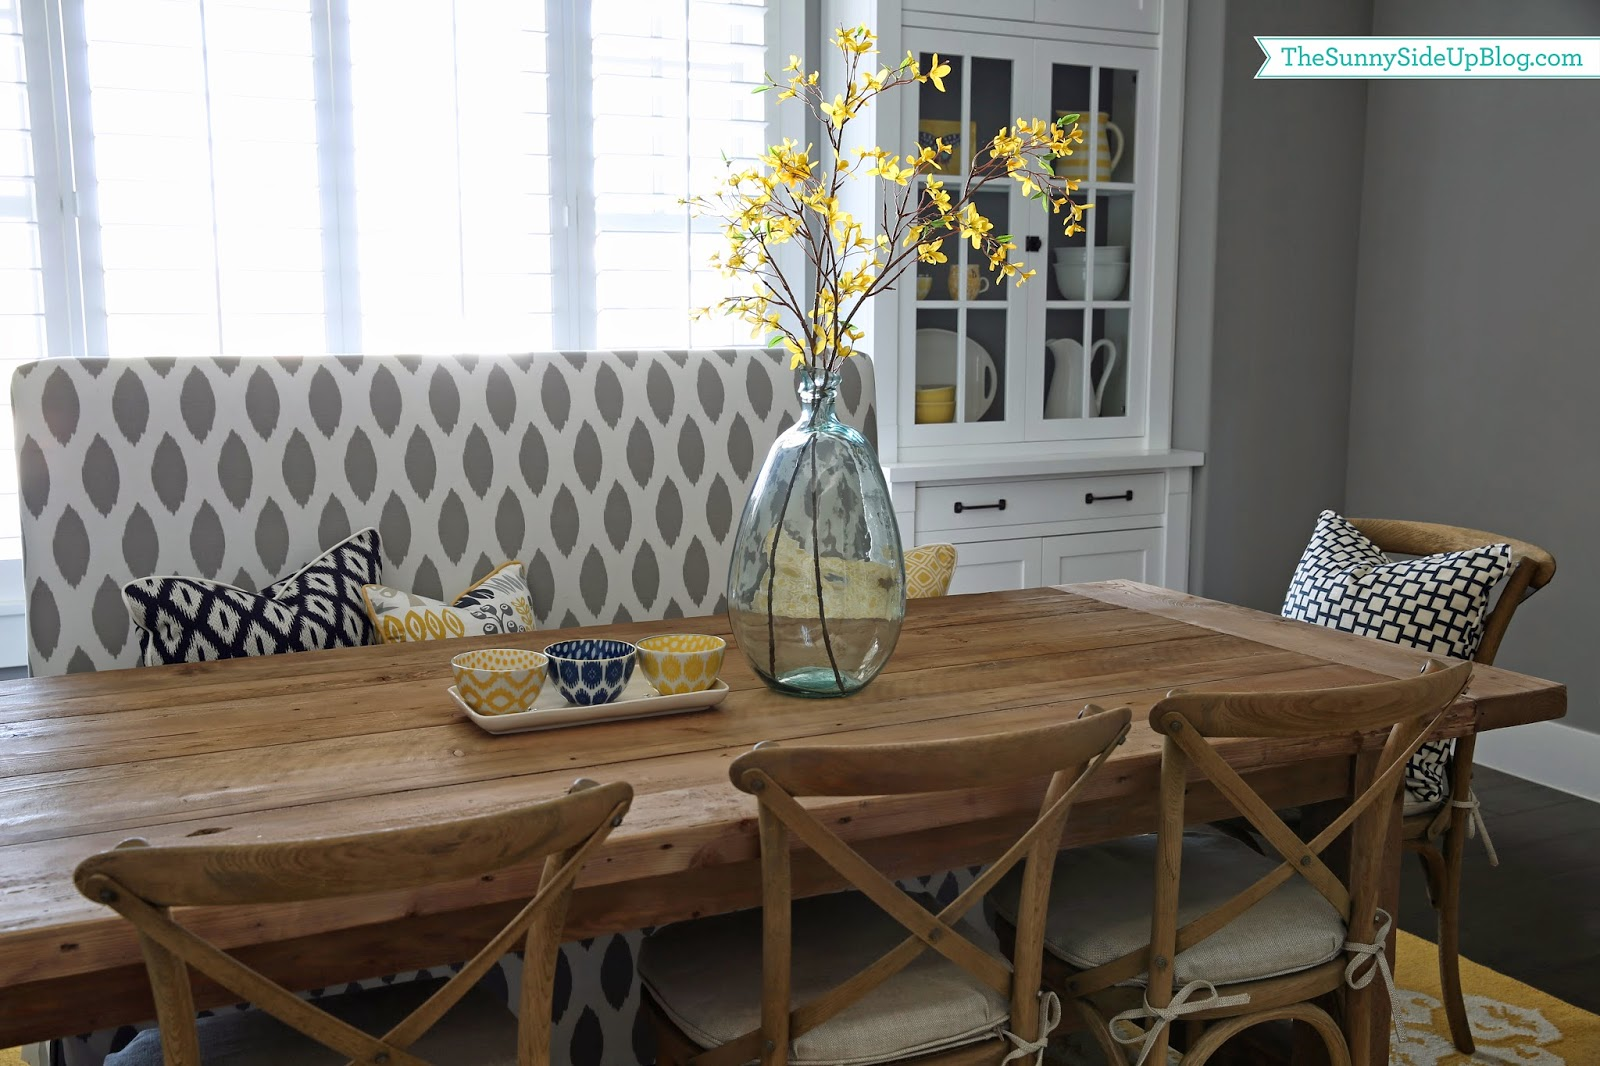 Dining Table Decor Ideas Summer Dining Table Decor The Sunny Side Up Blog